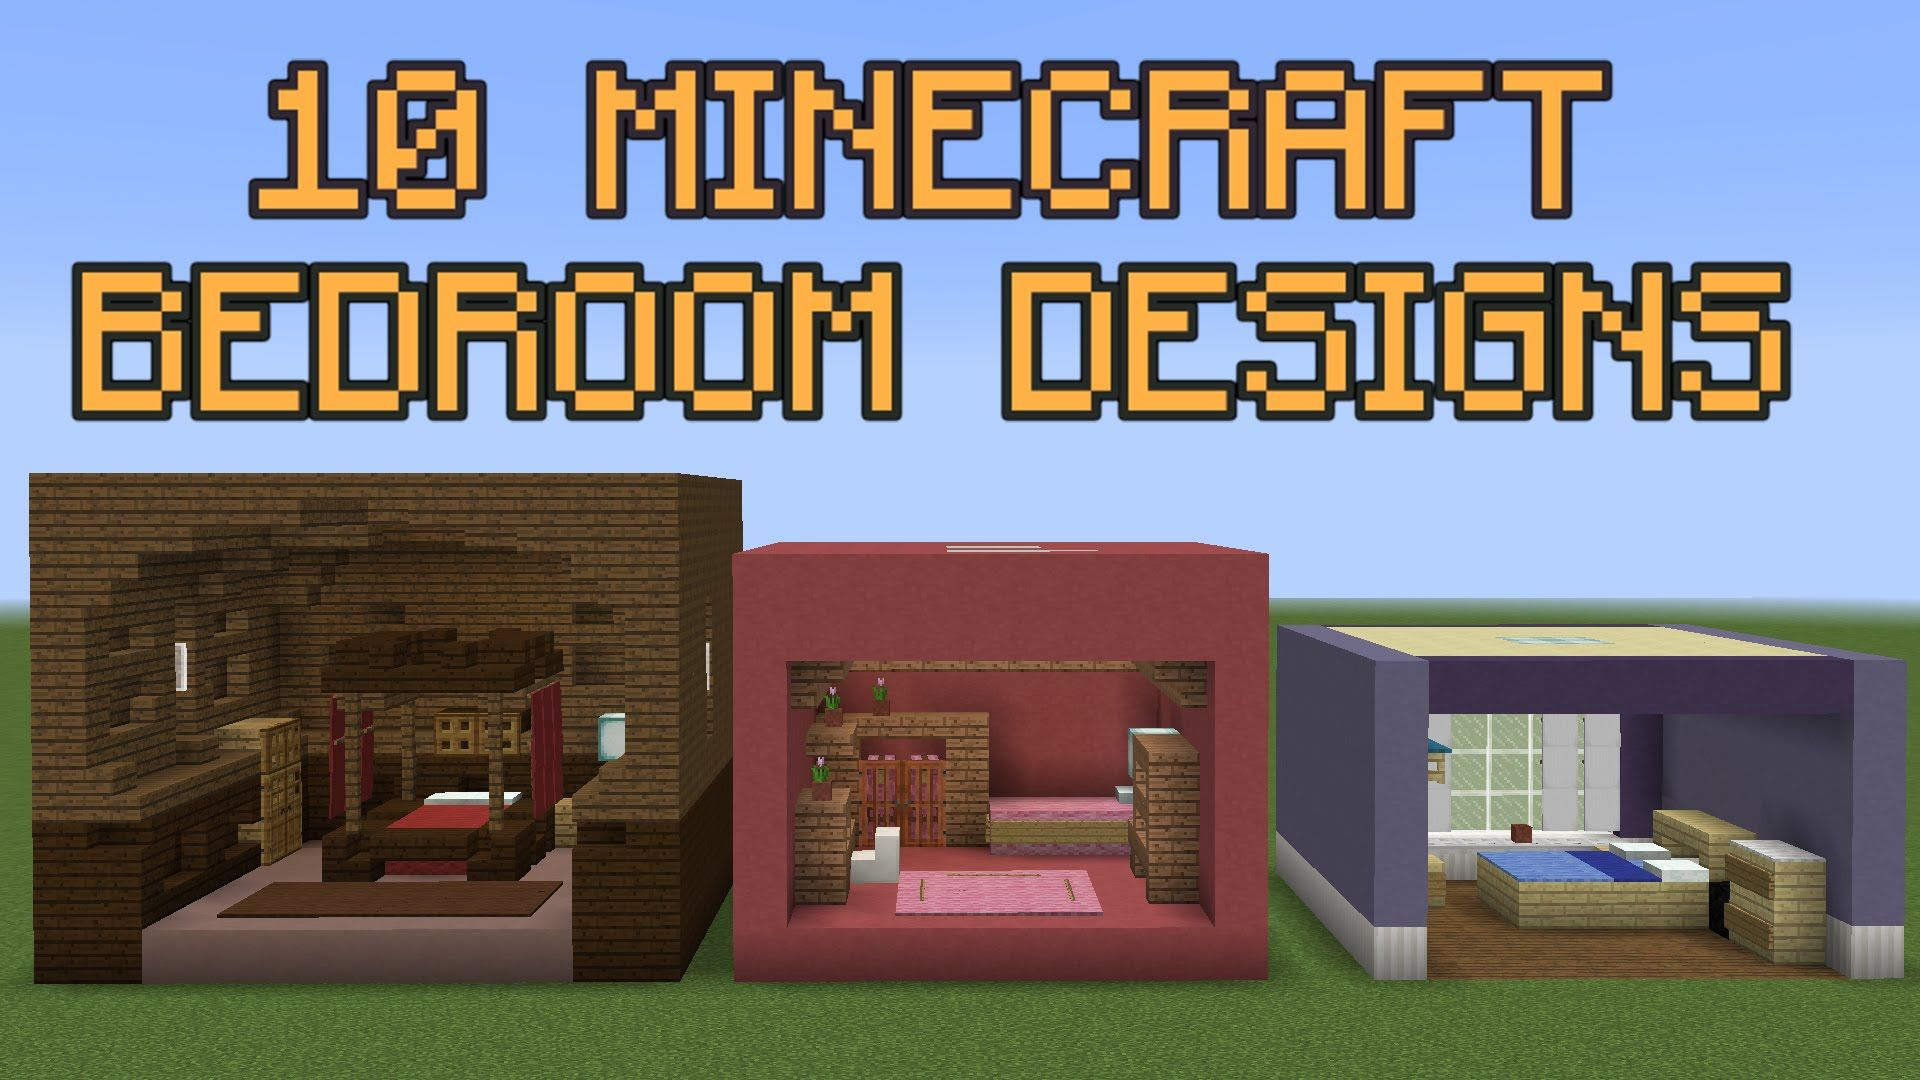 10 Minecraft Bedroom Designs With Images Minecraft Bedroom